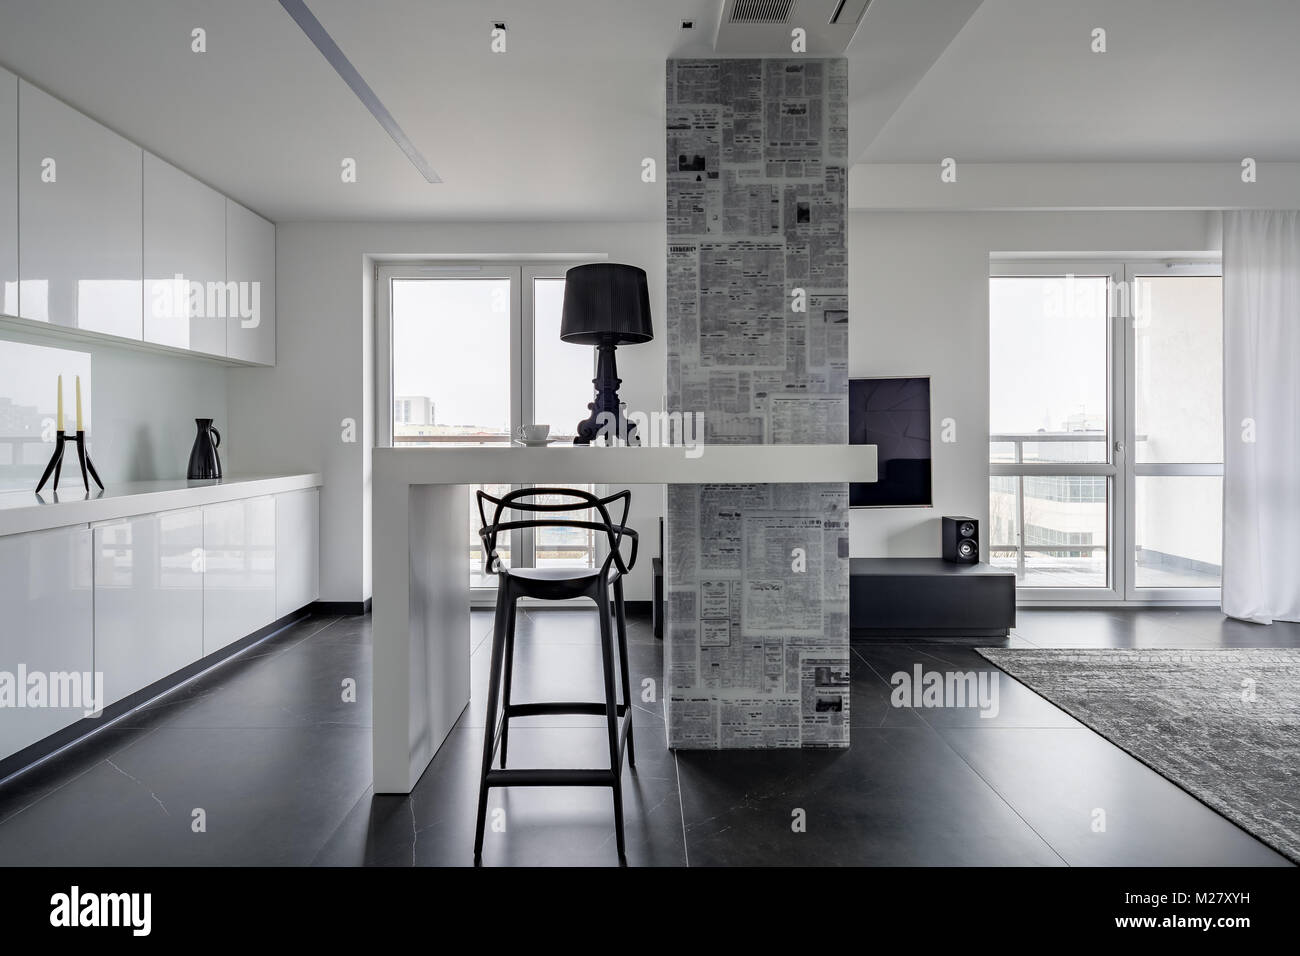 Modern Black And White Interior With Magazine Themed Wallpaper Stock